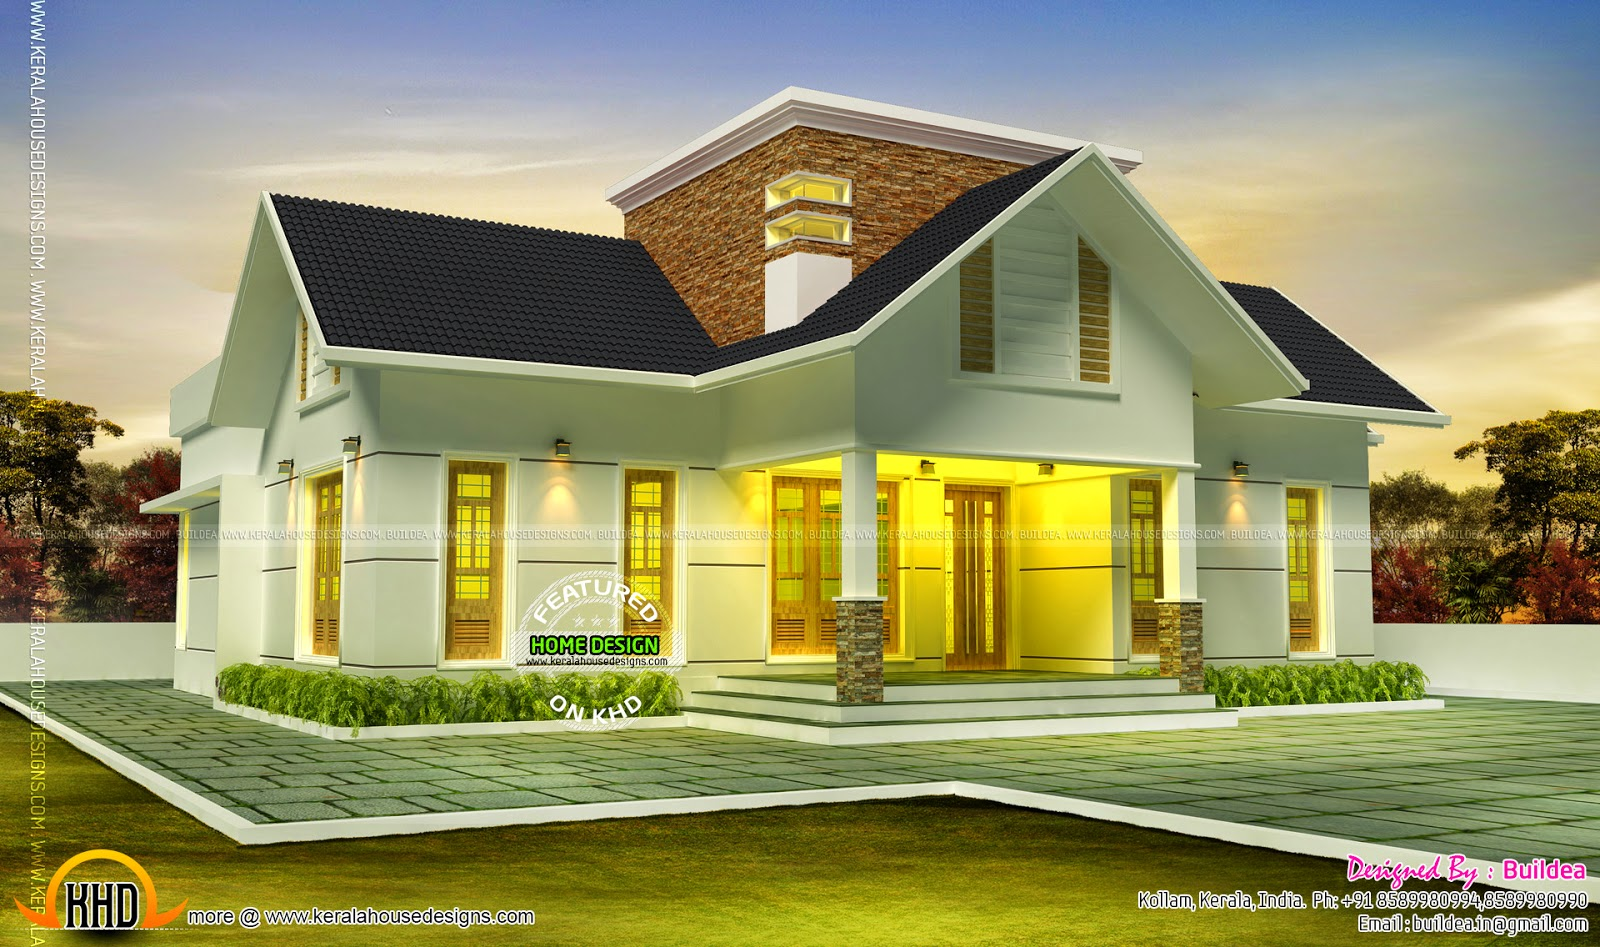 Very beautiful house kerala home design and floor plans for Beautiful house designs and plans